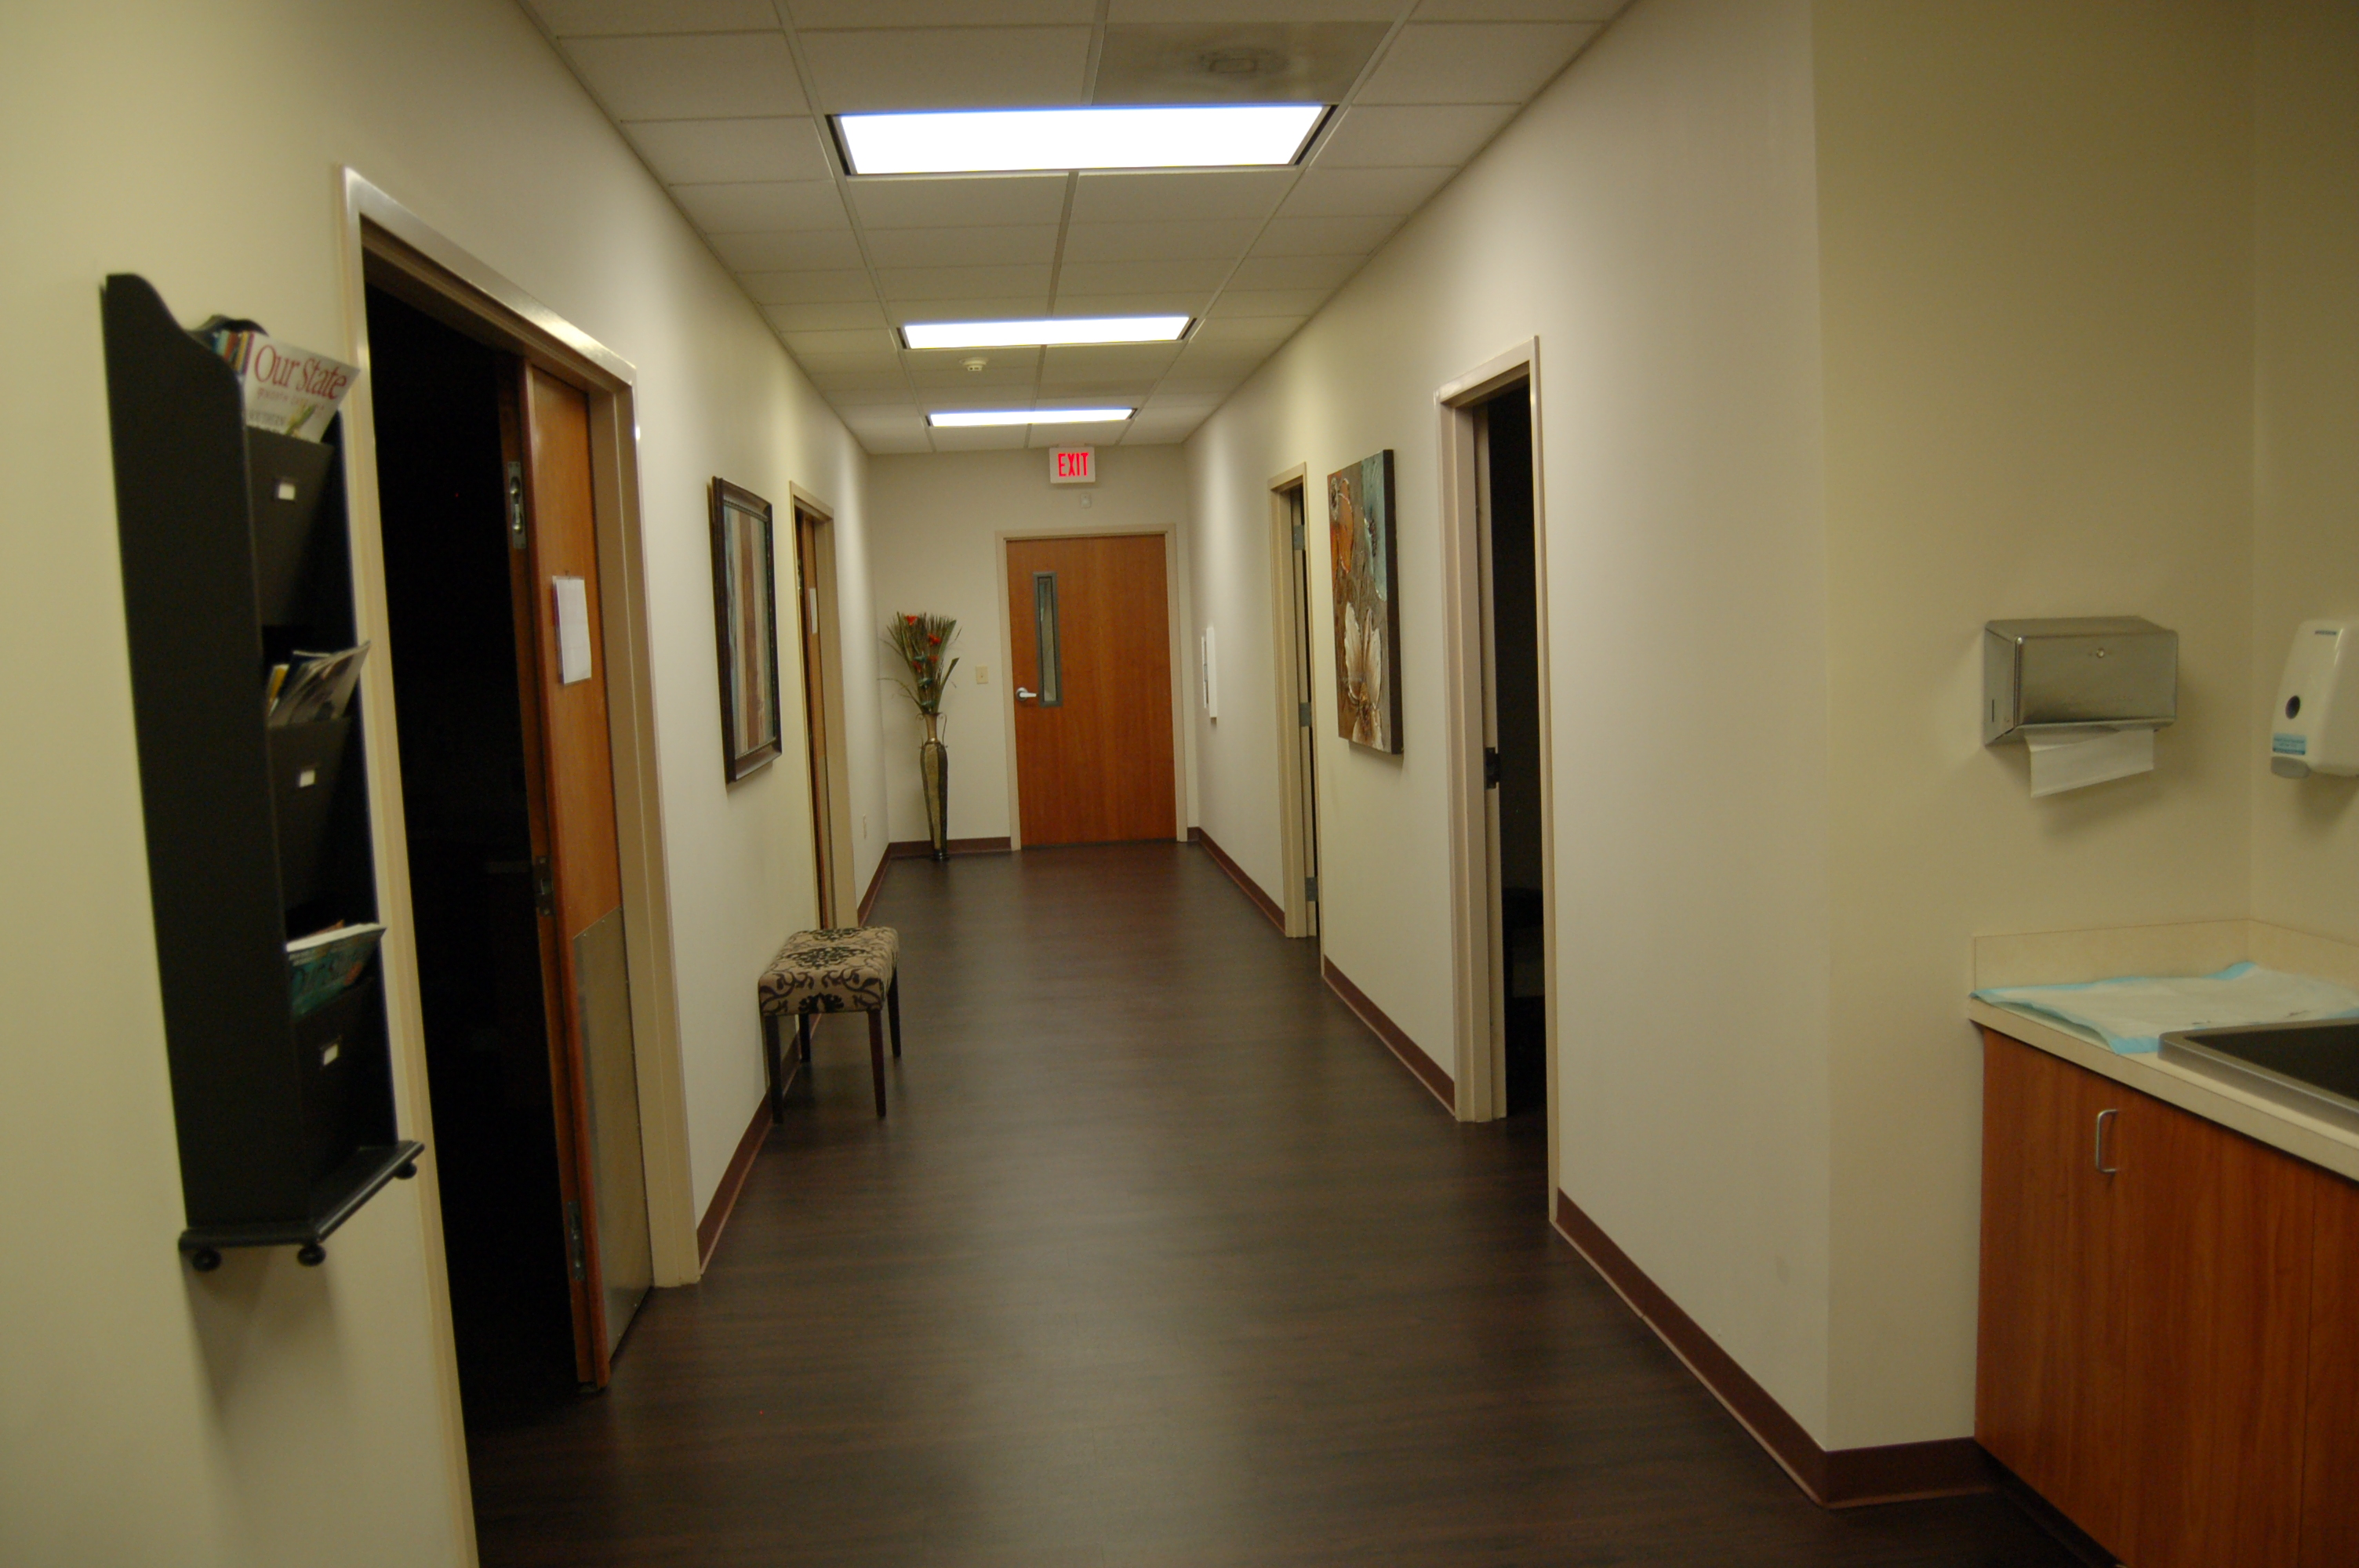 Hallway to procedure rooms